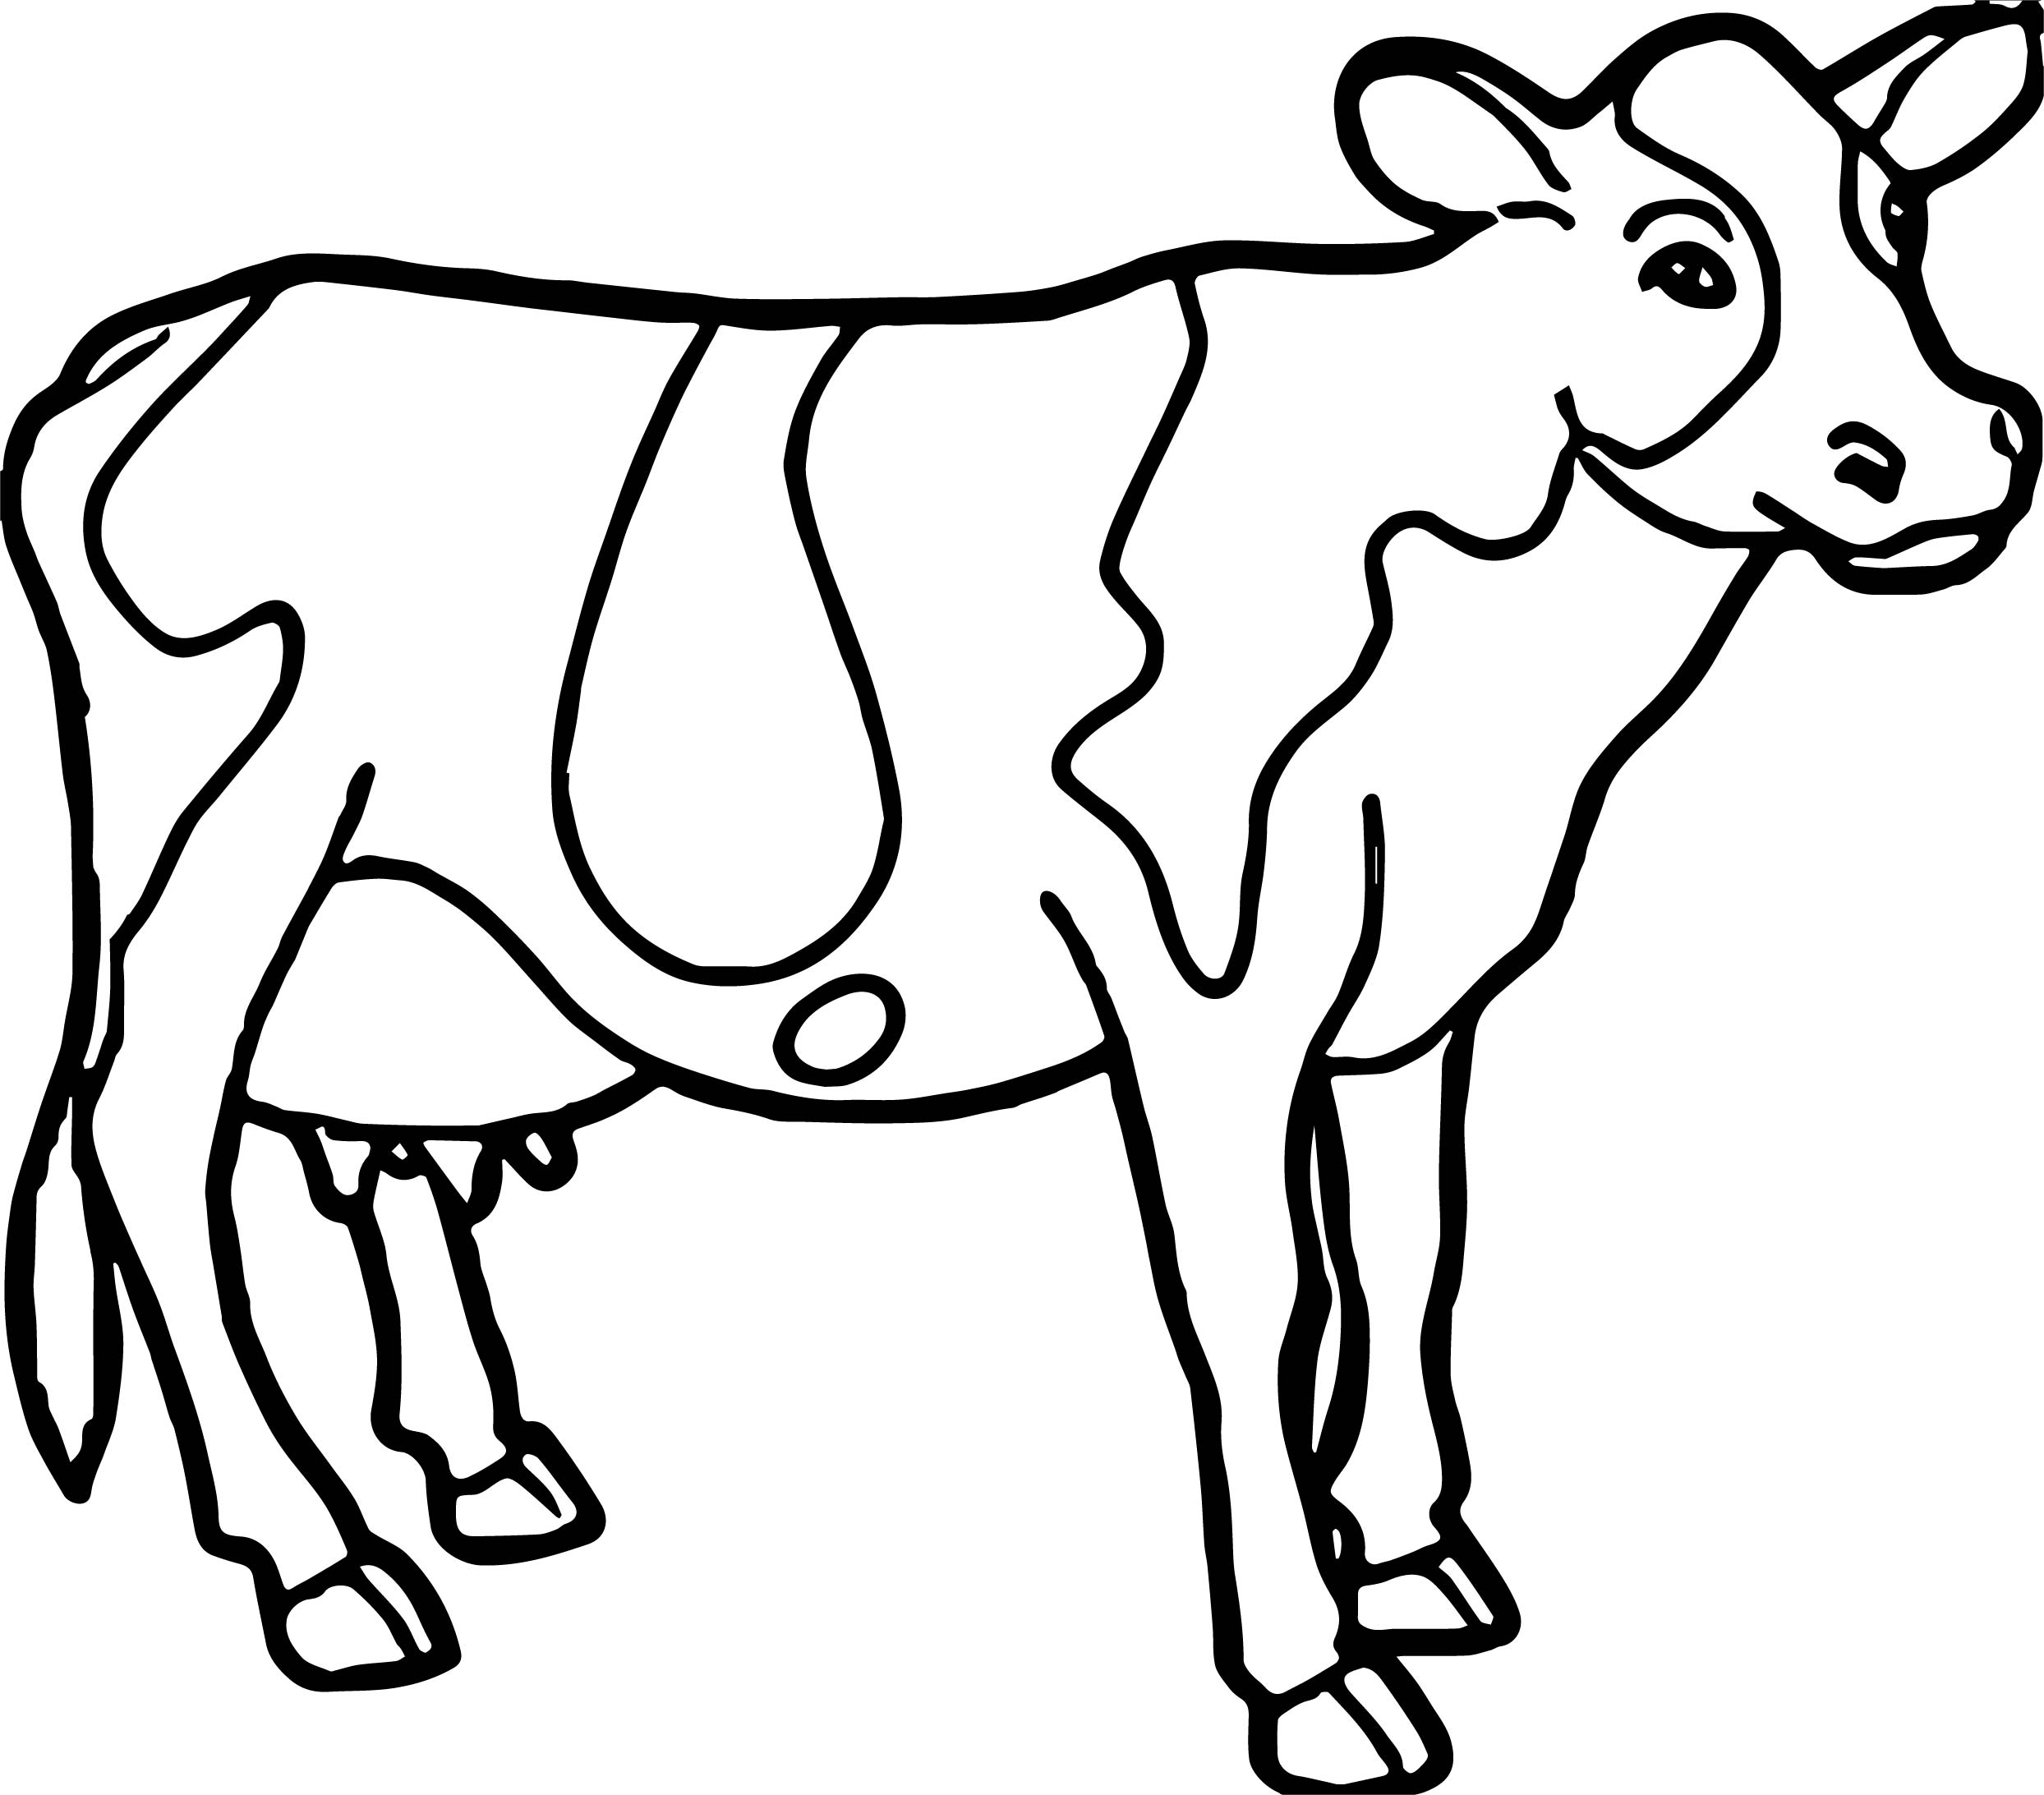 2488x2185 Cow Coloring Page Pages Farm Animal Ribsvigyapan Ba Cow Cow